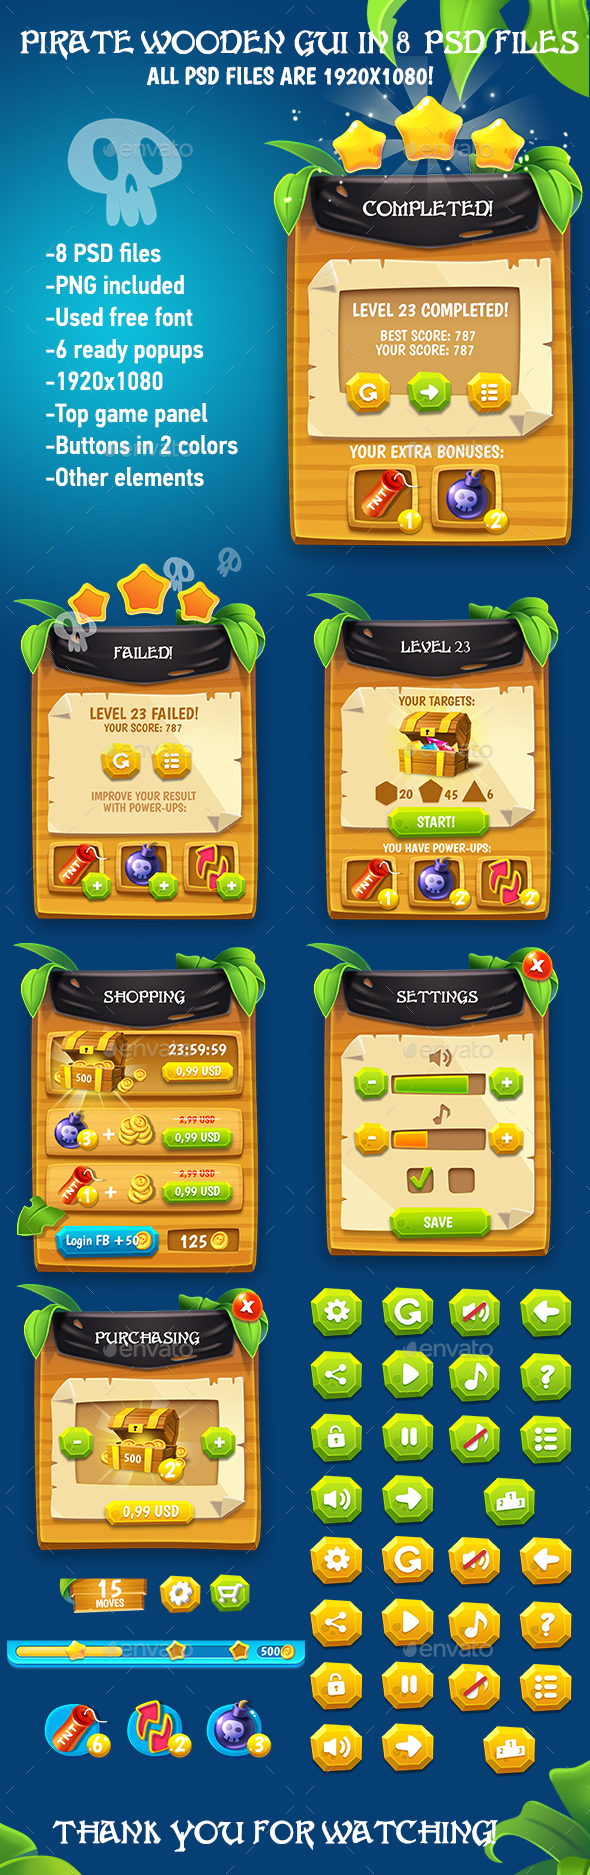 Wooden Pirate GUI Pack - User Interfaces Game Assets